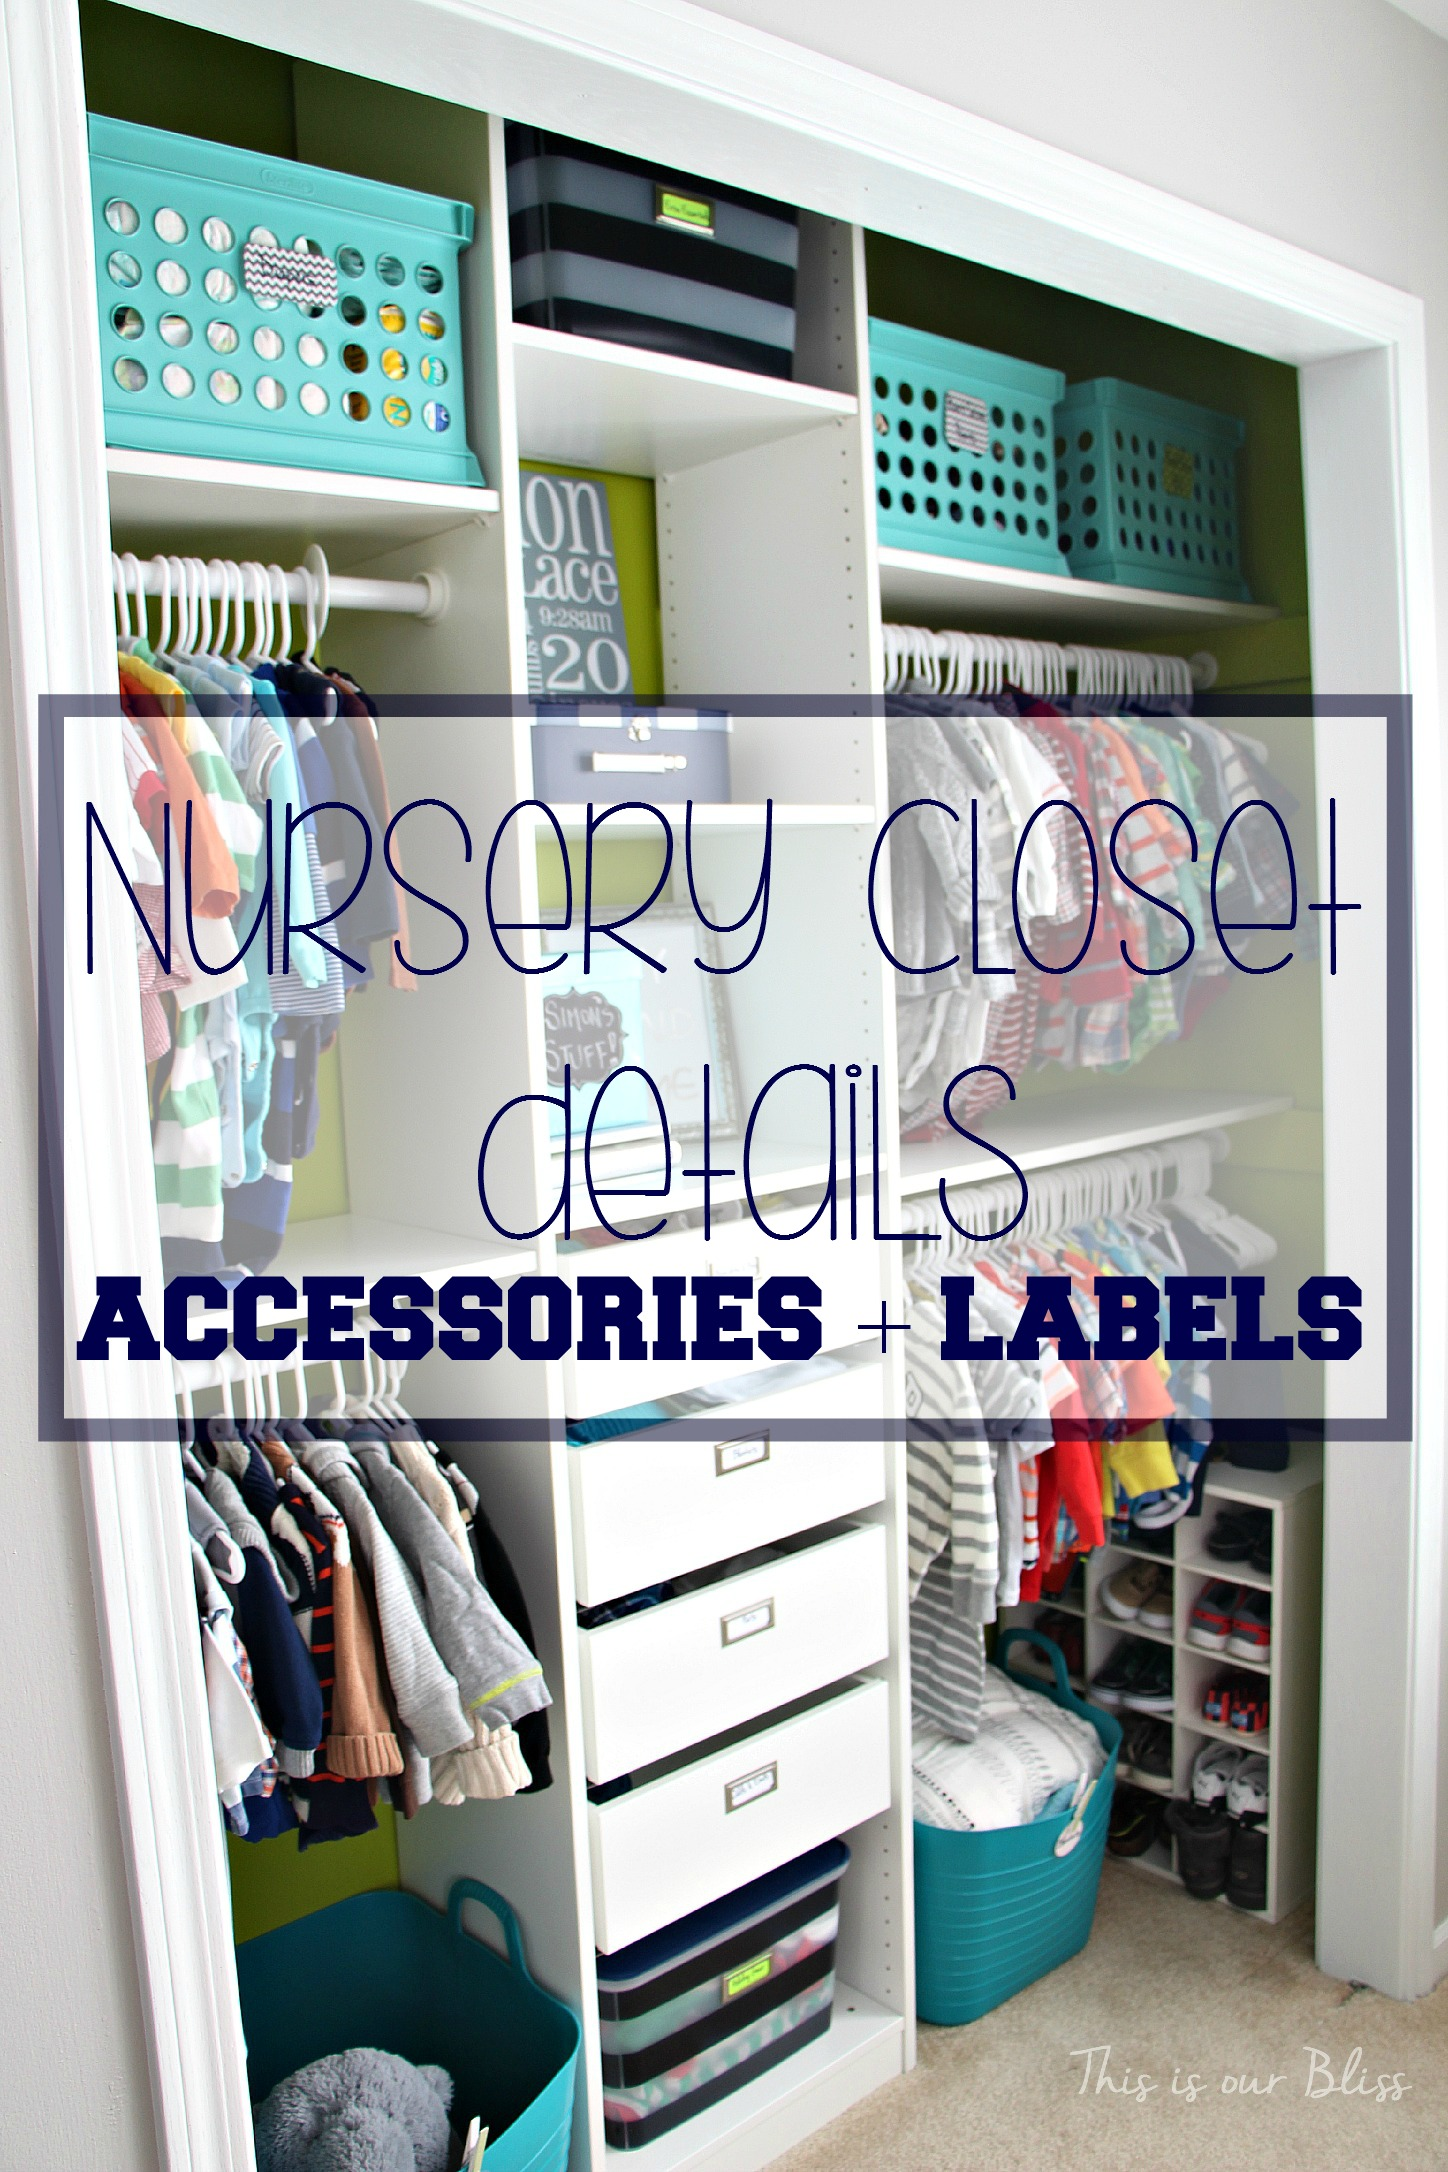 Have You Tackled Any Closets Lately? What Are Your Tips And Tricks For  Keeping Them Neat U0026 Tidy?